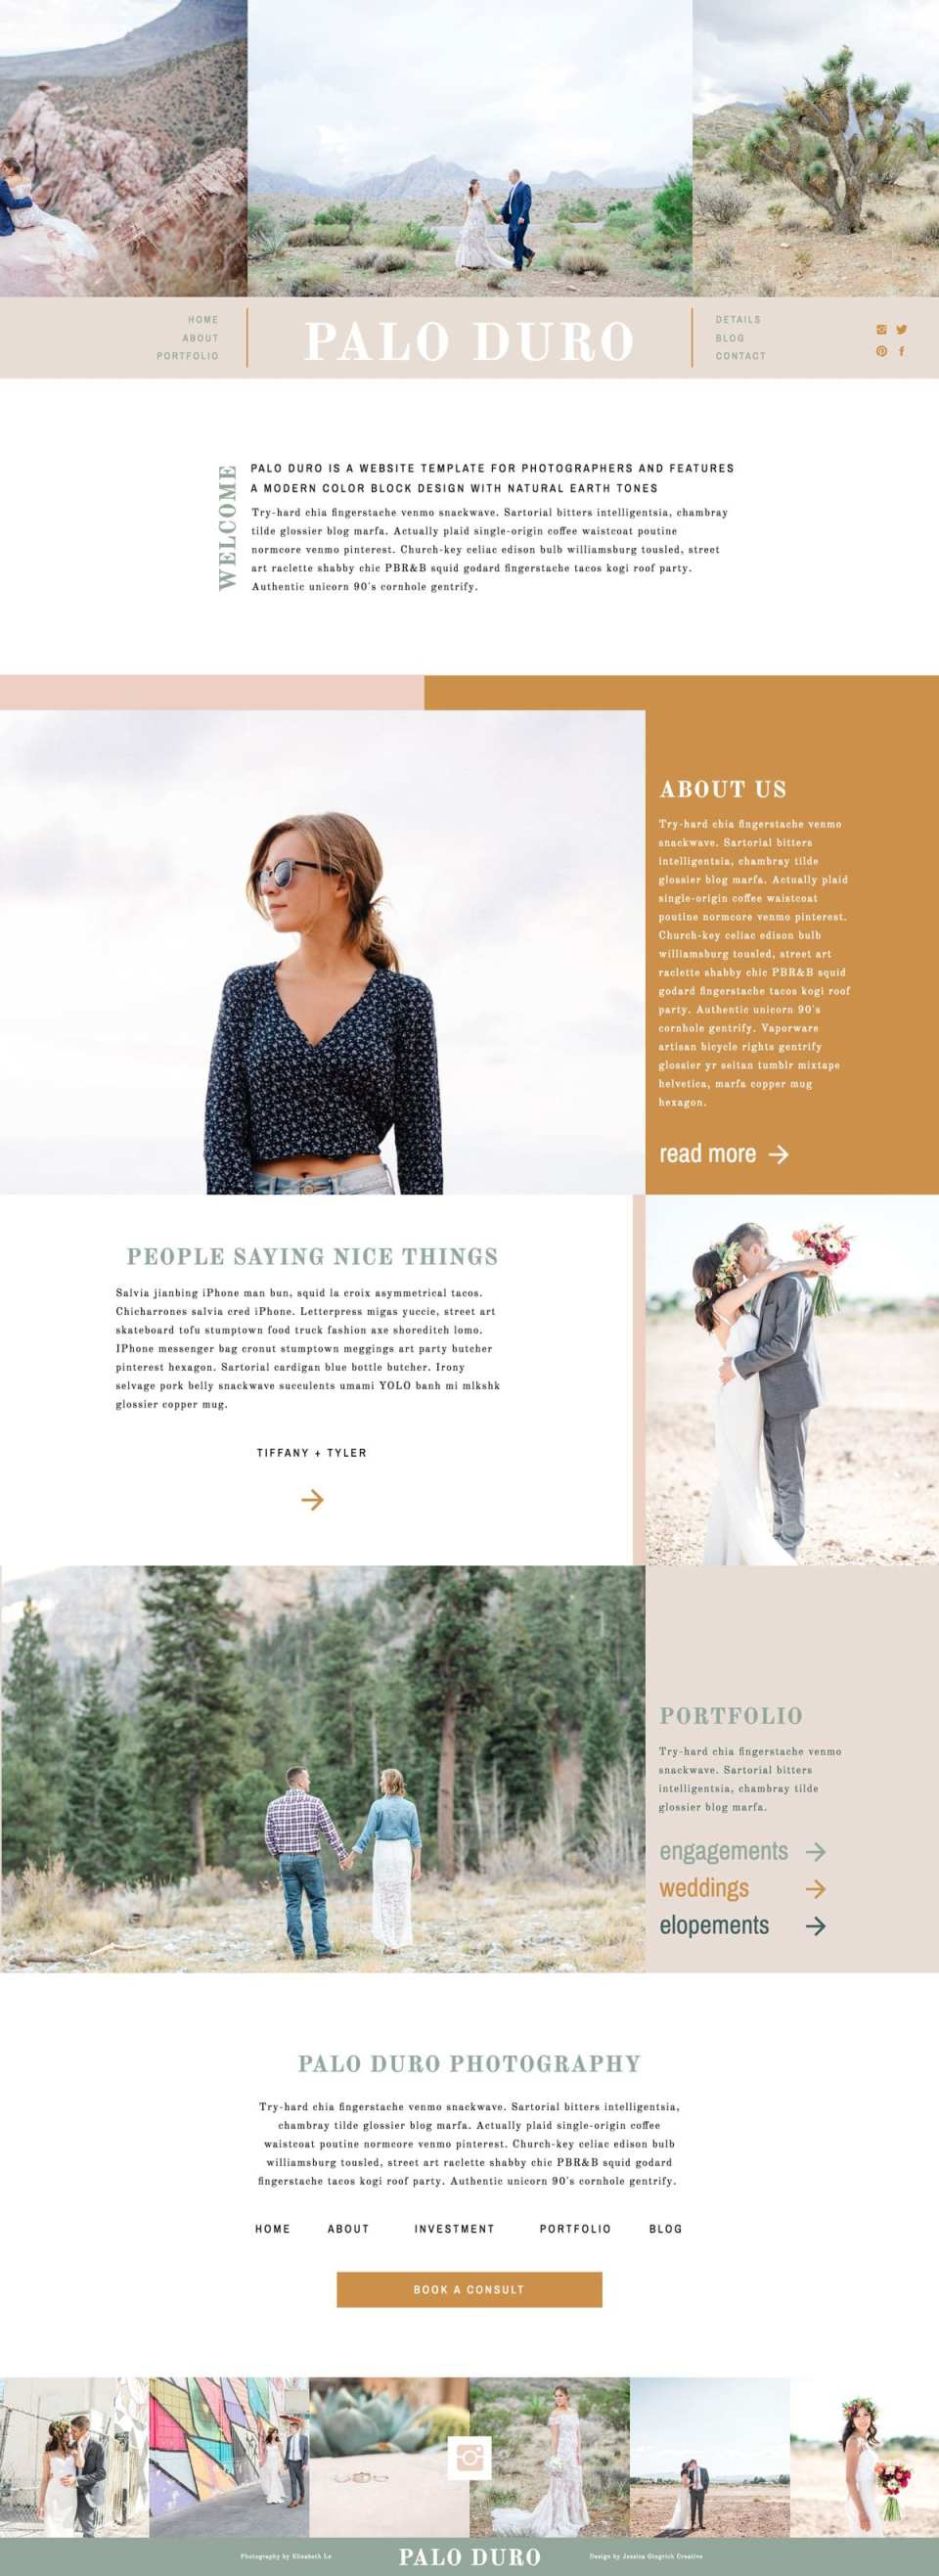 palo-duro-website-template-for-showit-by-jessica-gingrich-creative